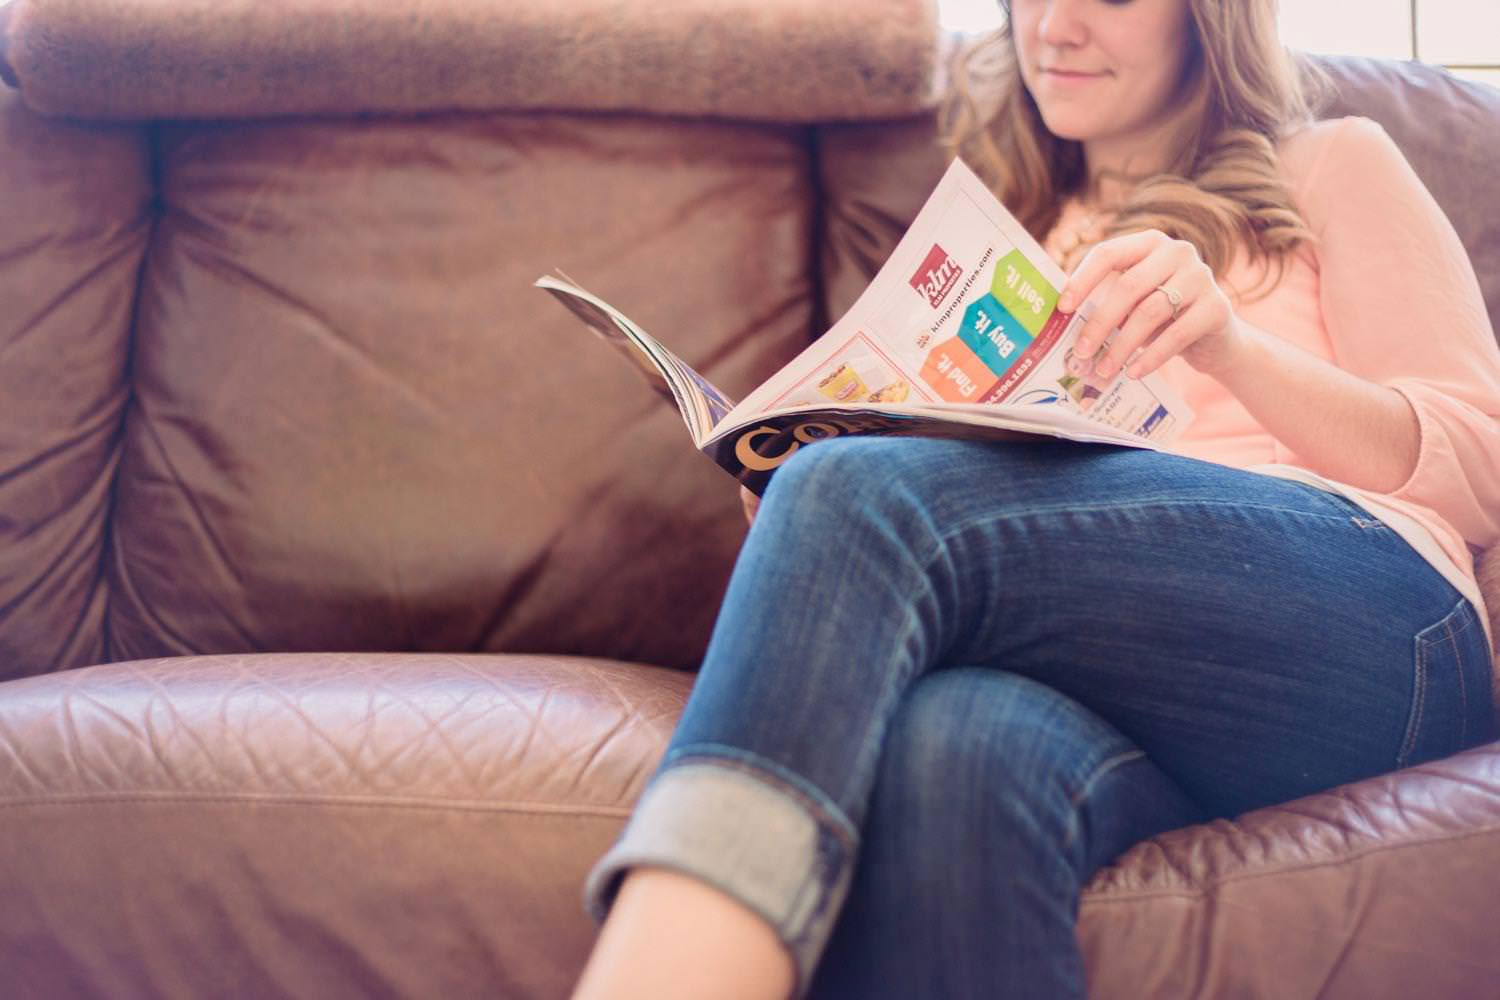 Girl reading a real estate magazine